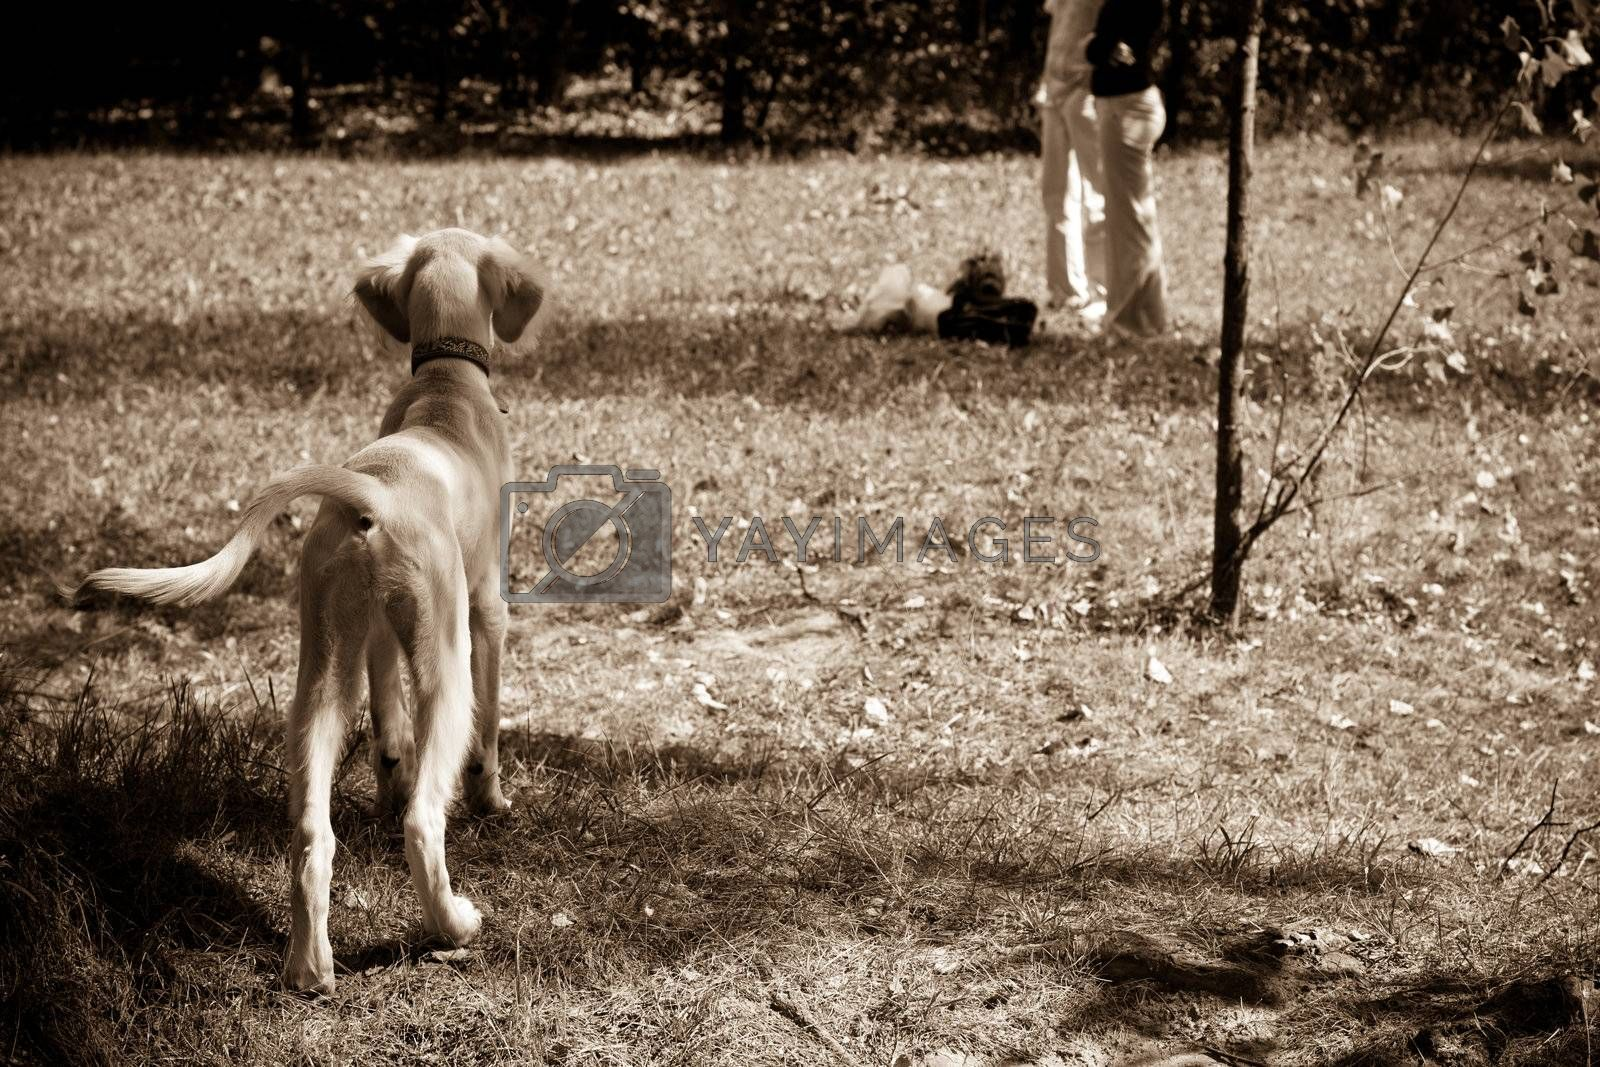 A standing saluki pup in a field and two people in the distance